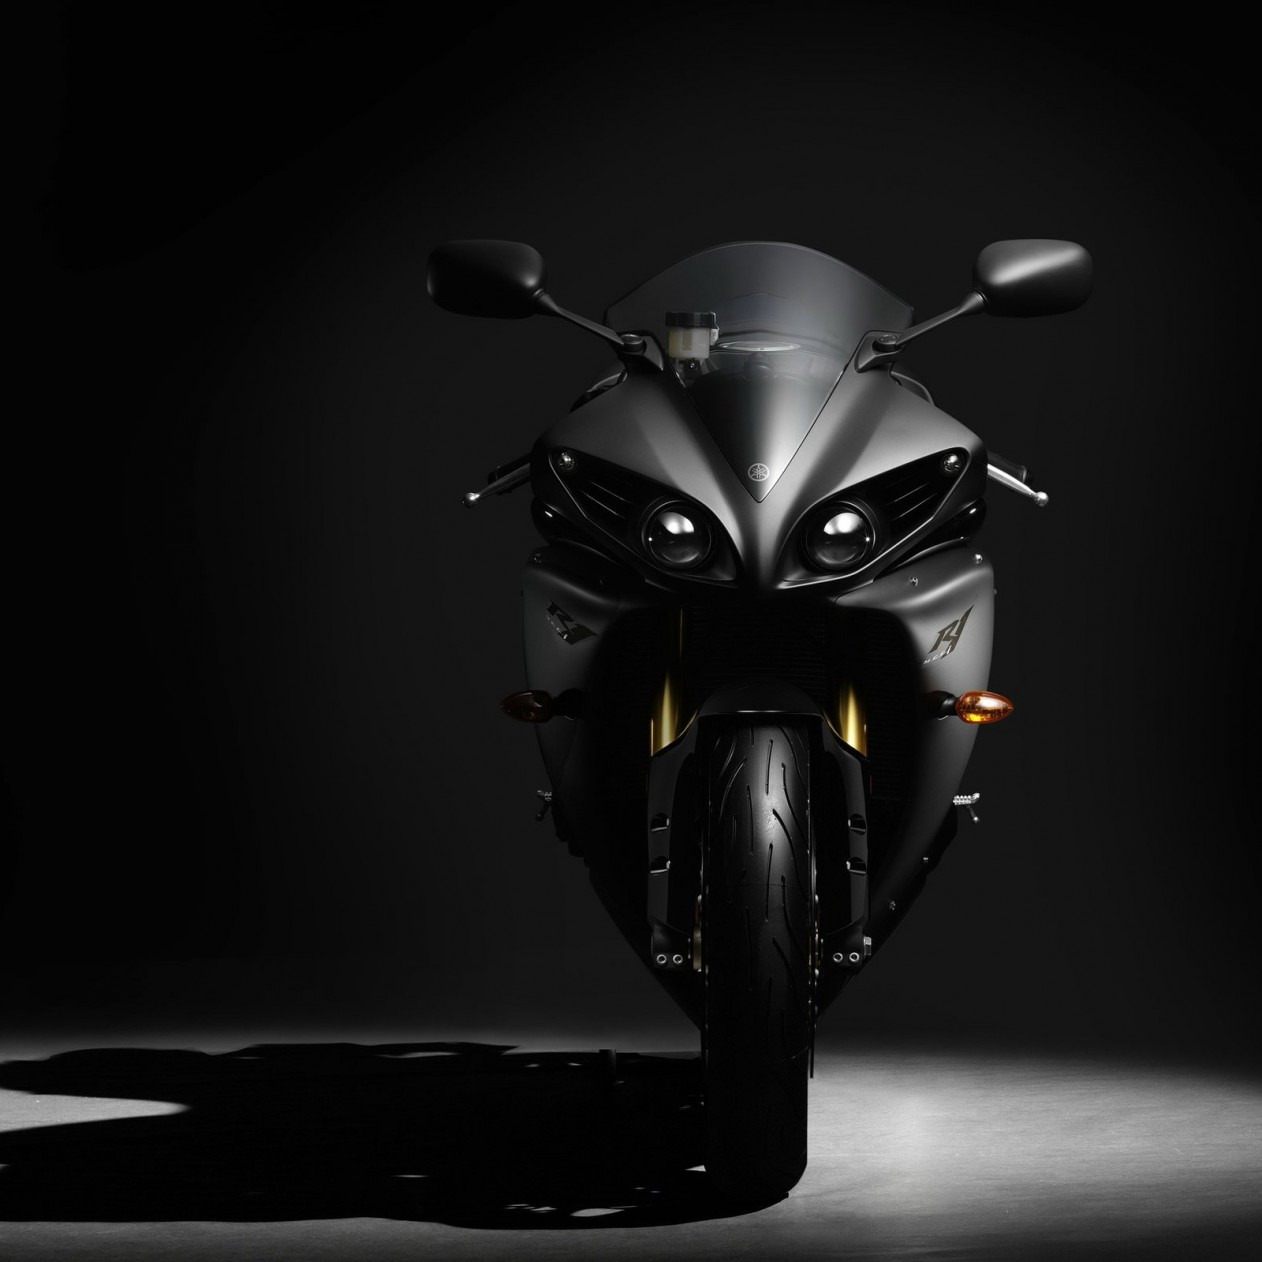 Yamaha Yzf R1 Wallpaper for Apple iPad mini